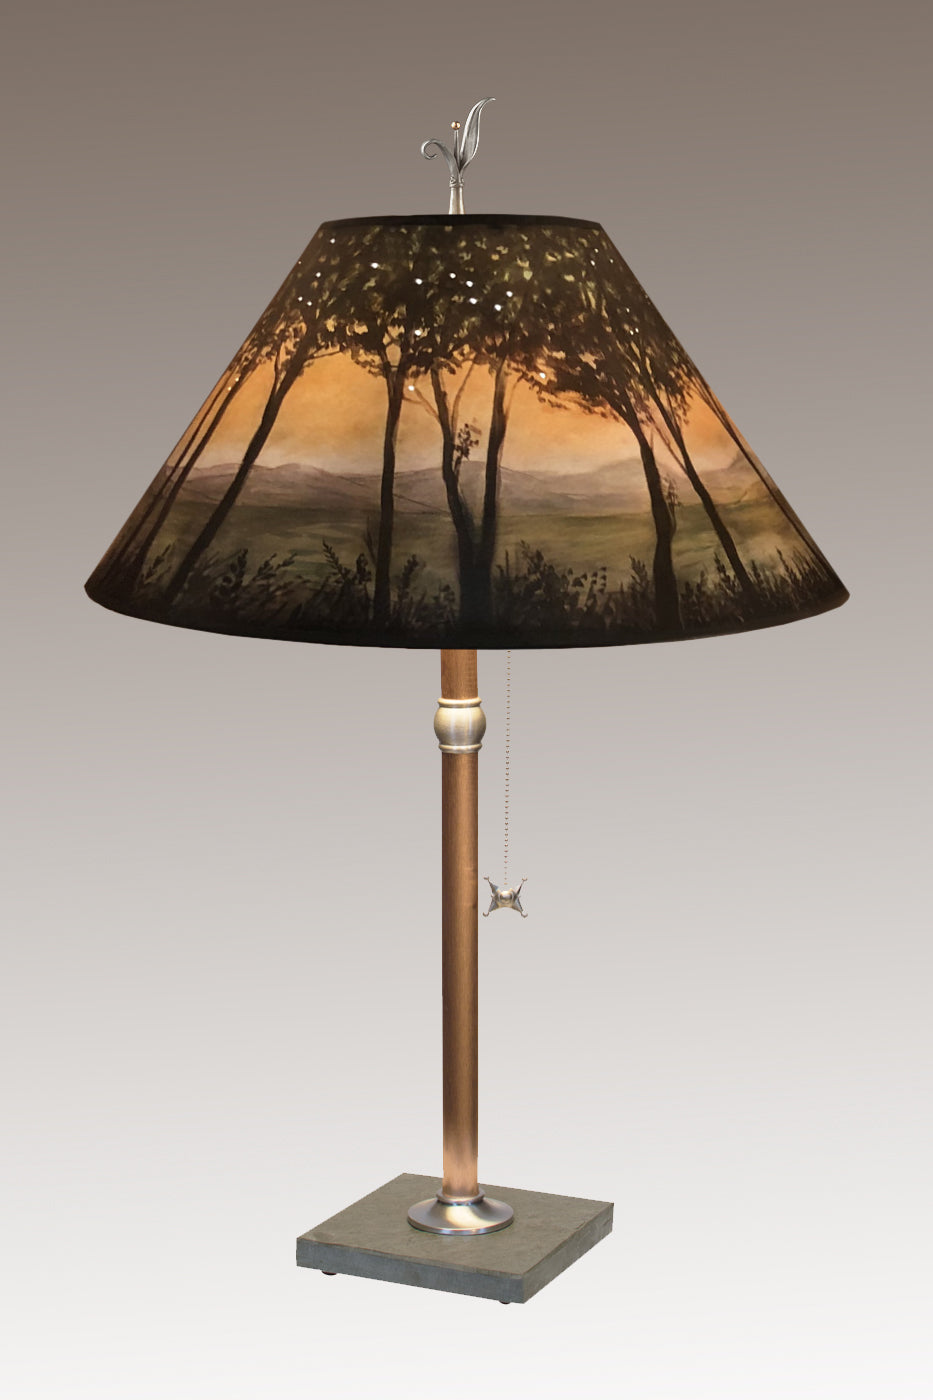 Copper Table Lamp on Vermont Slate with Large Conical Shade in Dawn